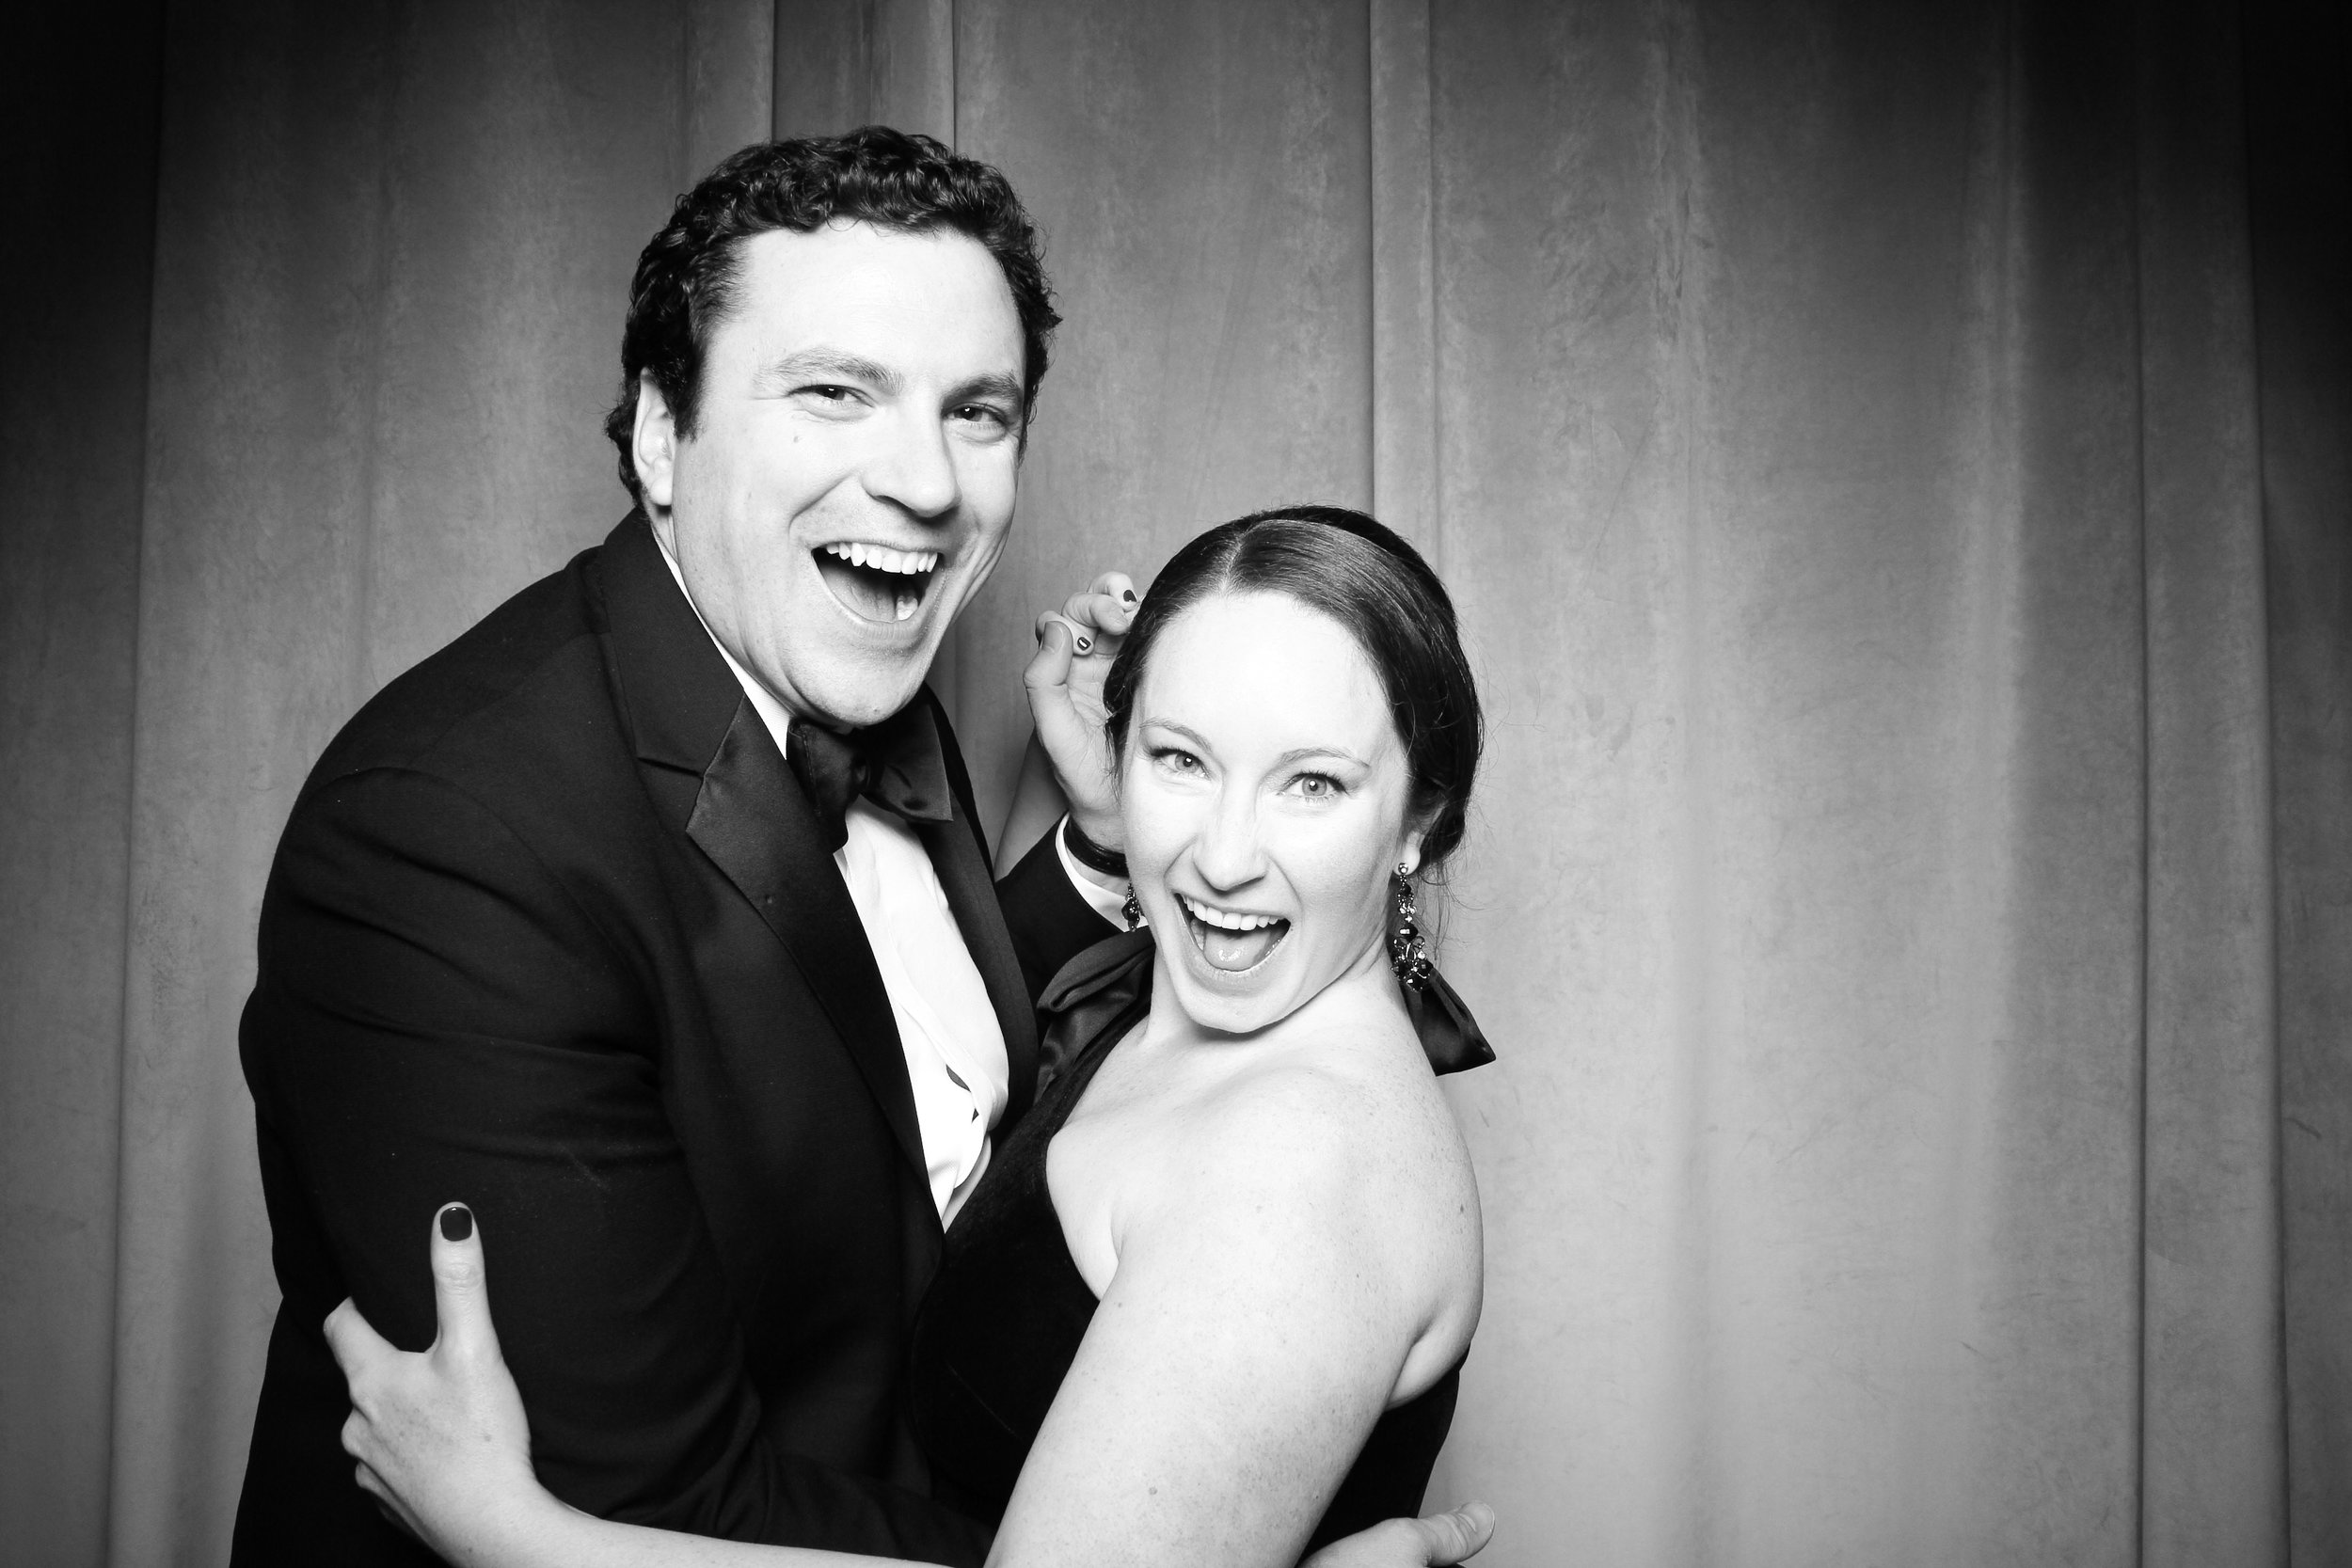 Chicago_Vintage_Wedding_Photobooth_Four_Seasons_04.jpg